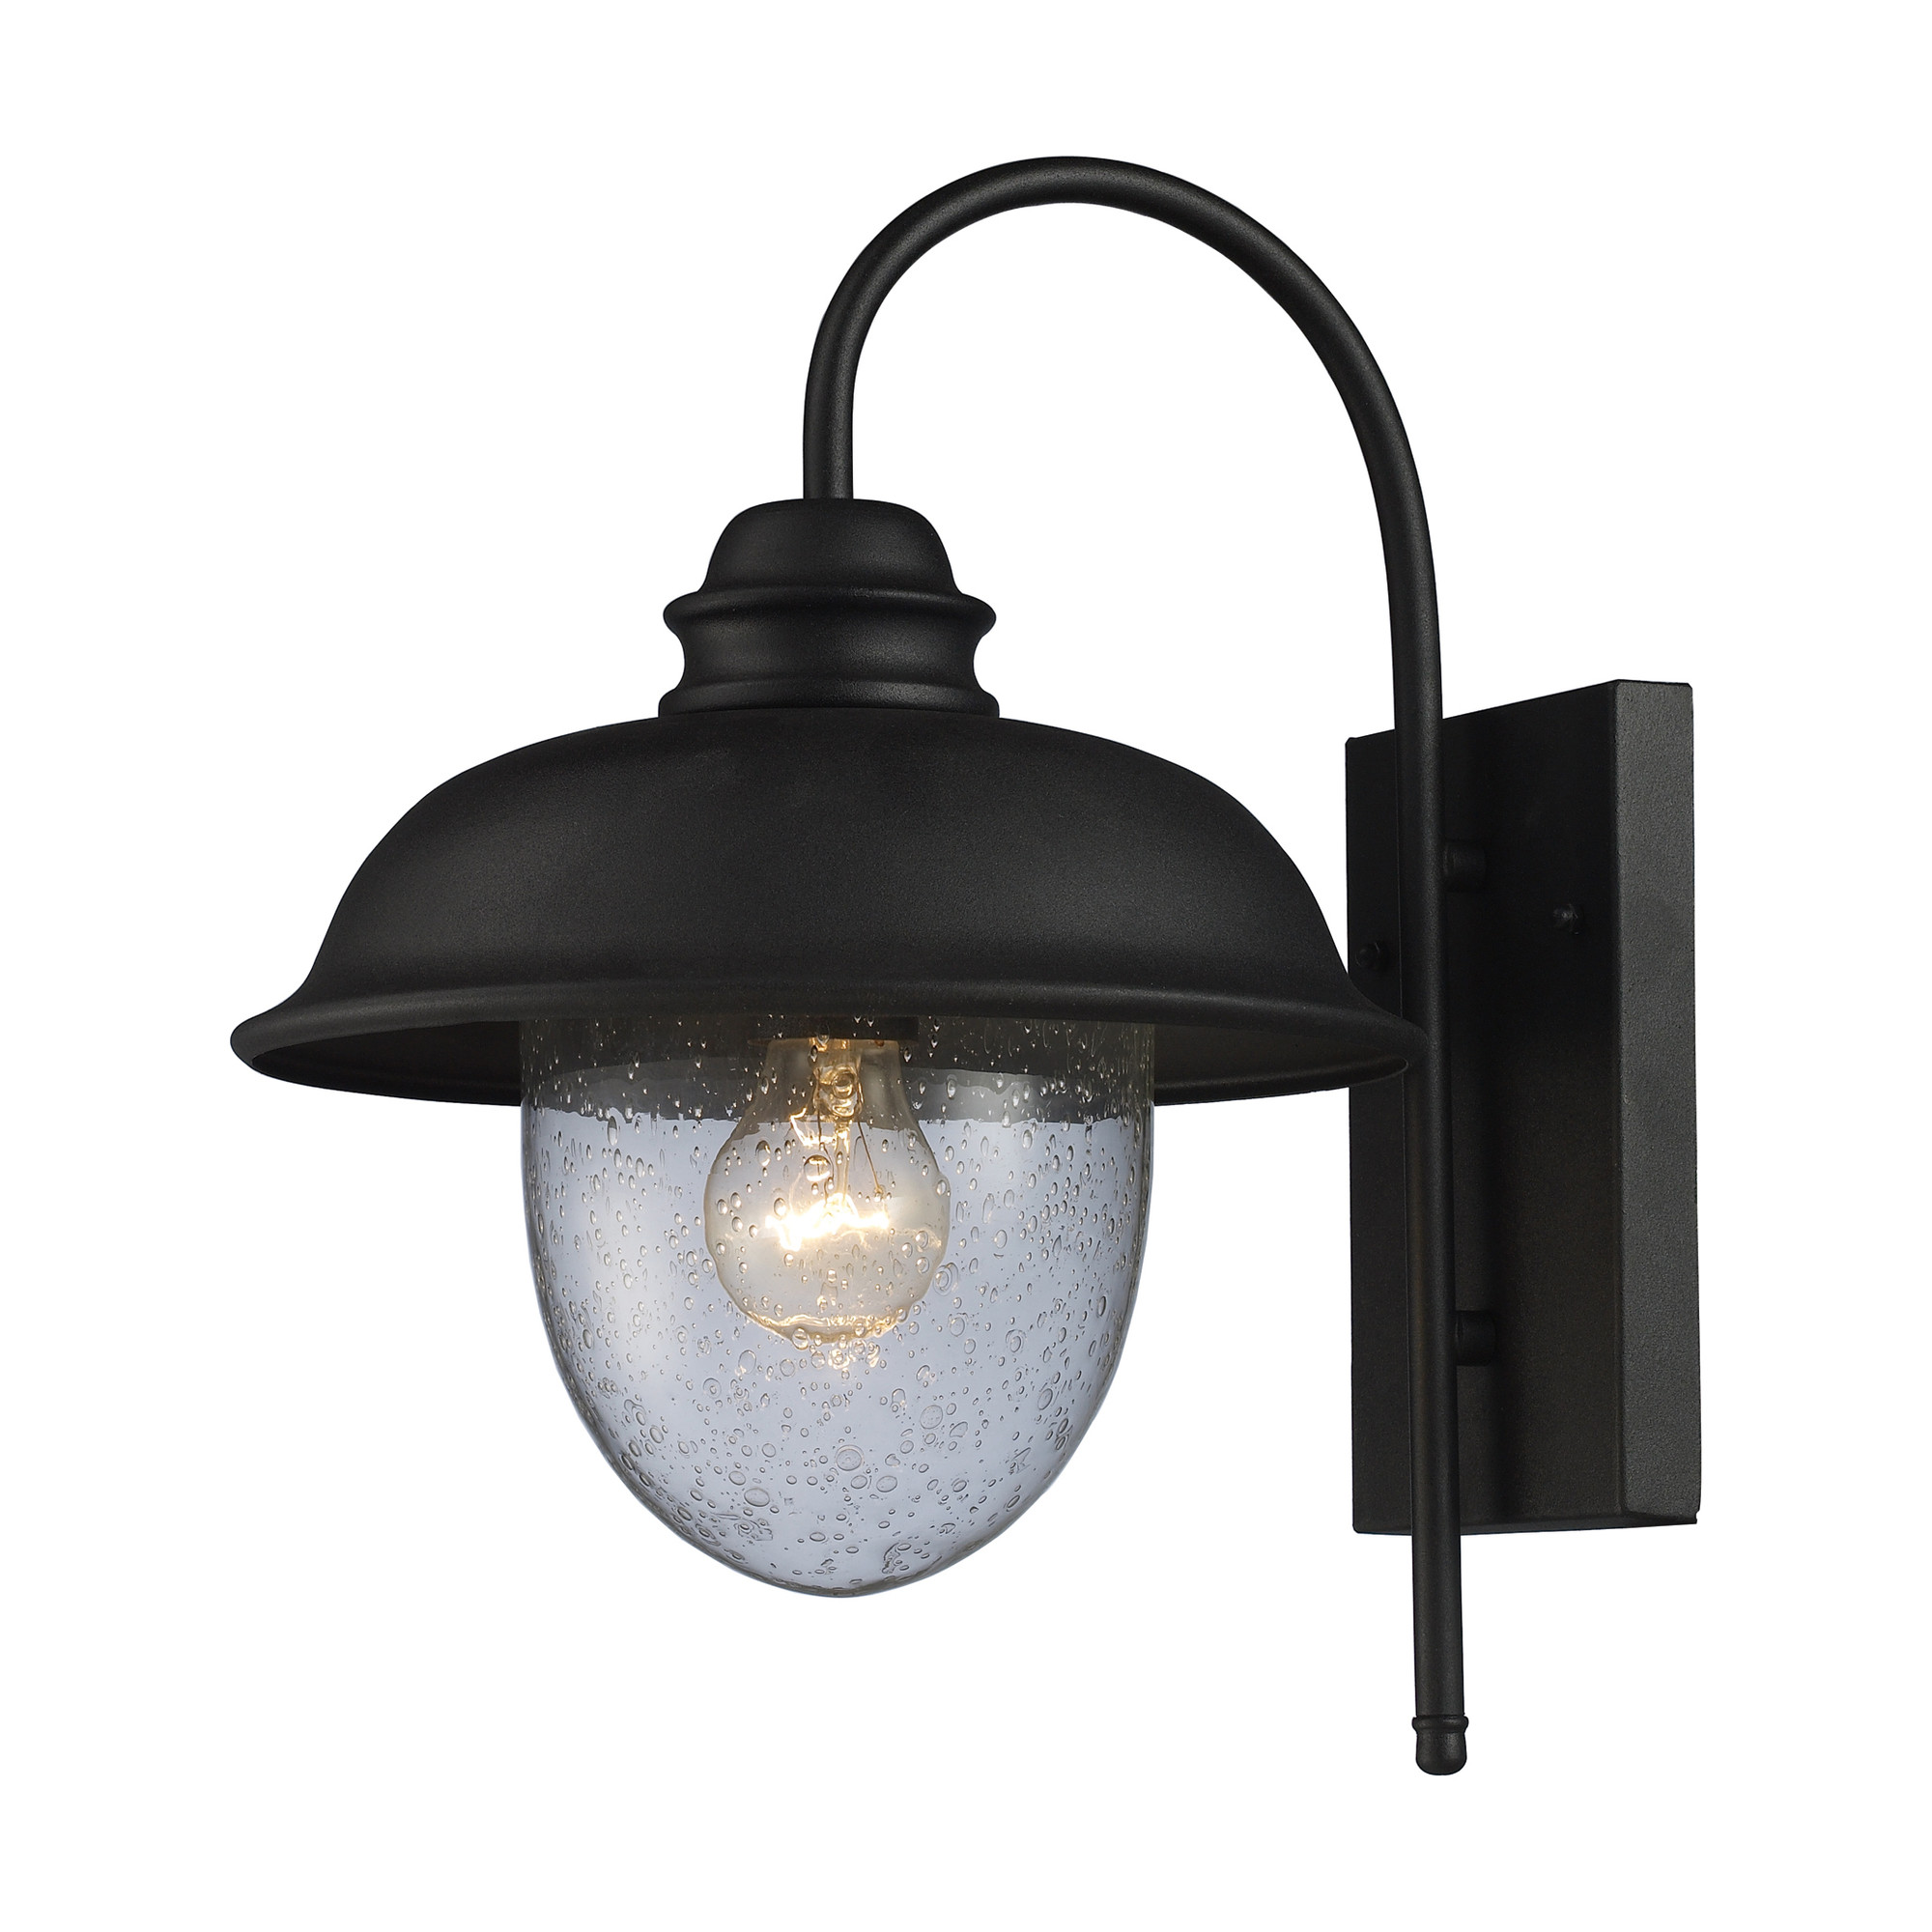 Elk lighting streetside cafe 1 light outdoor wall lantern l brilliant source lighting for Exterior light sconce